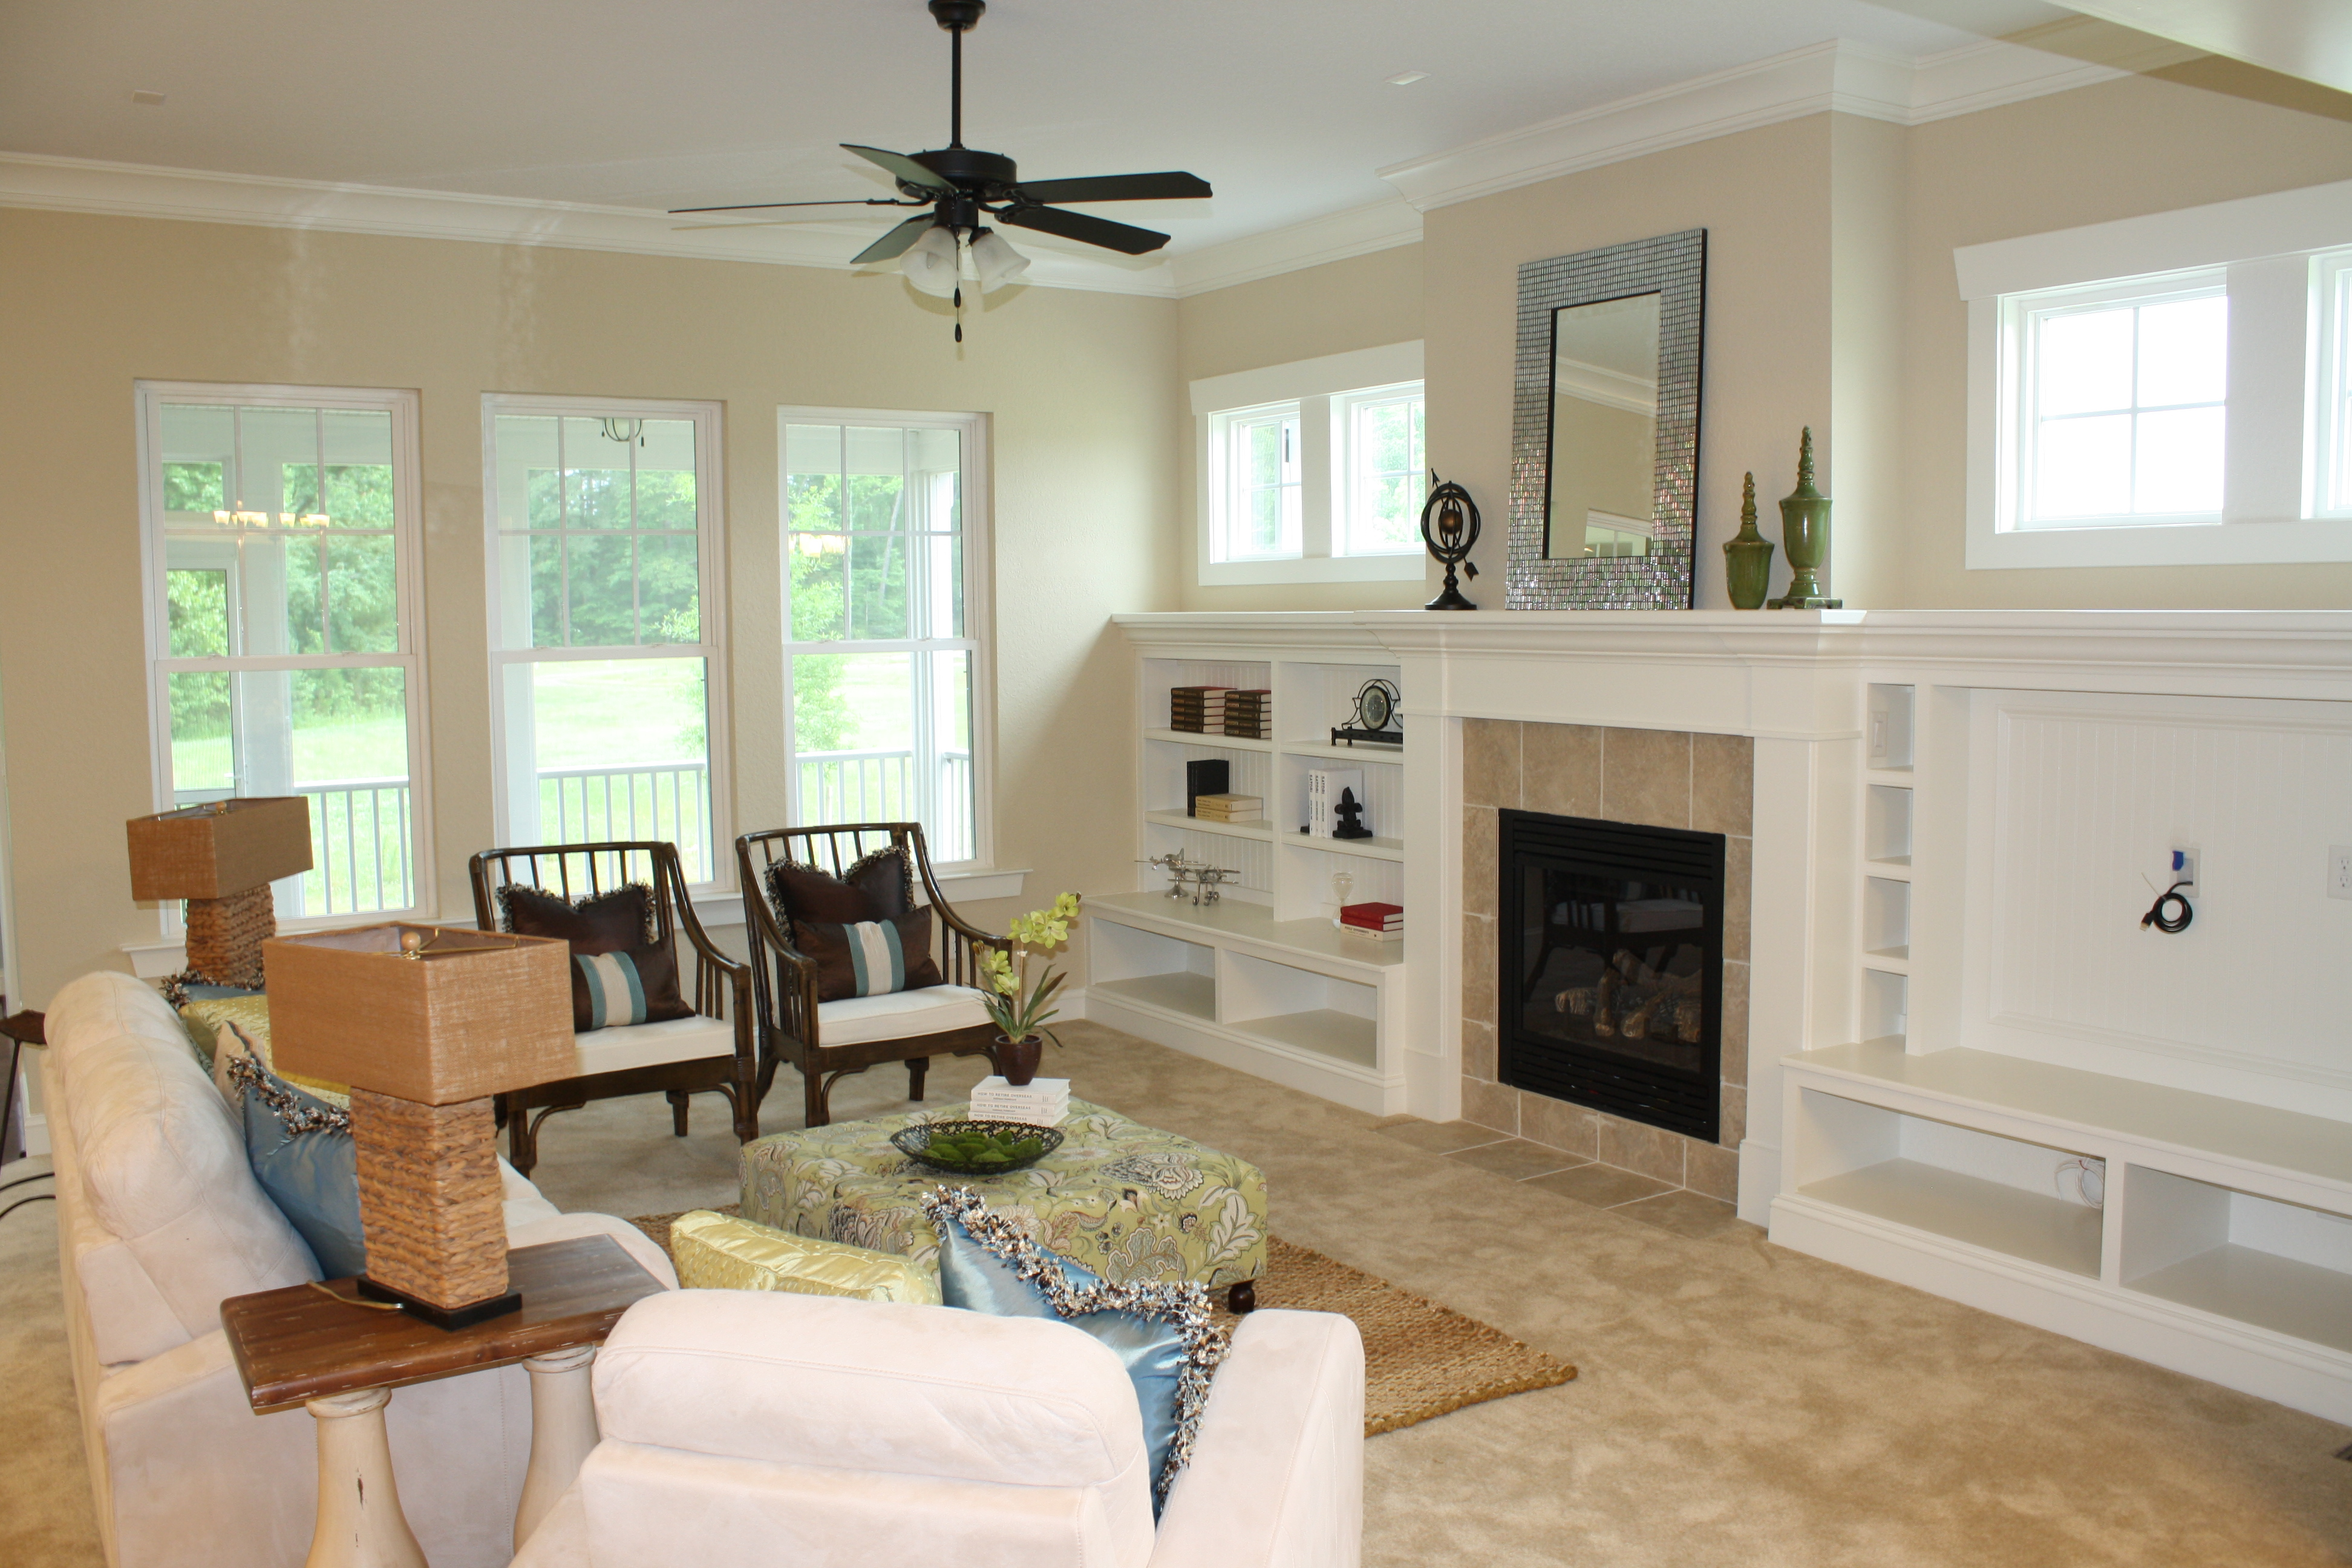 Interior Design Homes Our New Site Featuring The Best In: New Coastal Cottage Model Home By